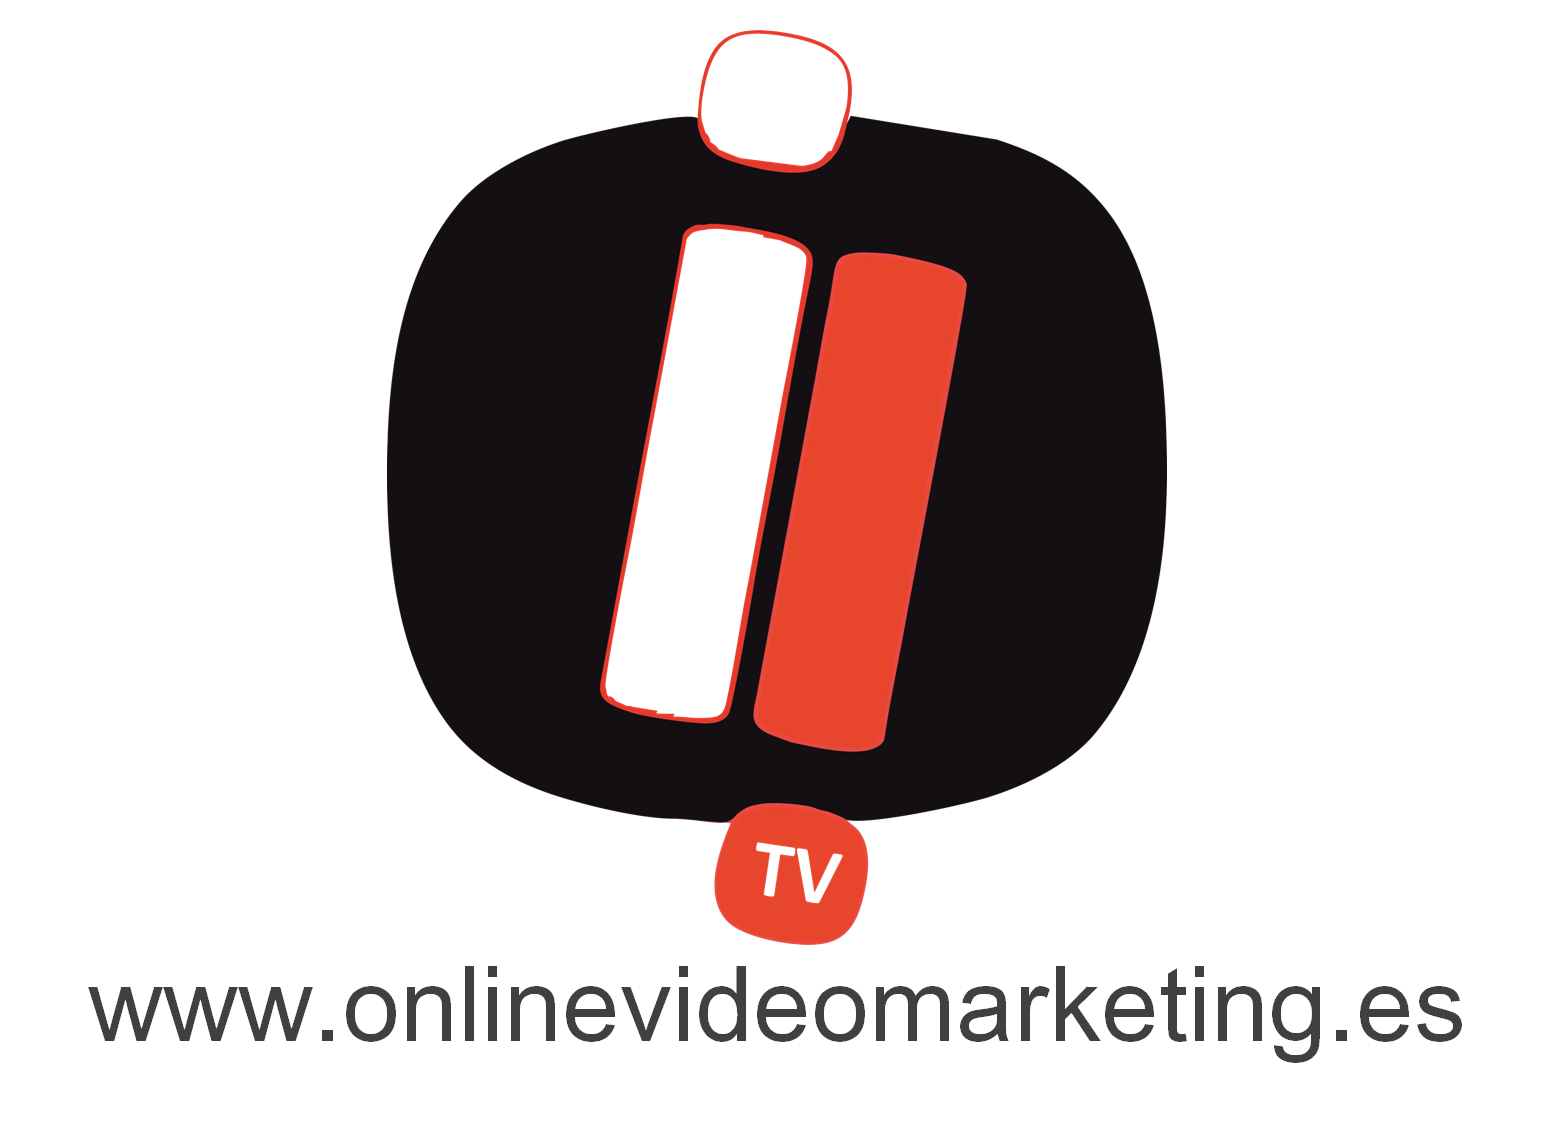 http://onlinevideomarketing.es